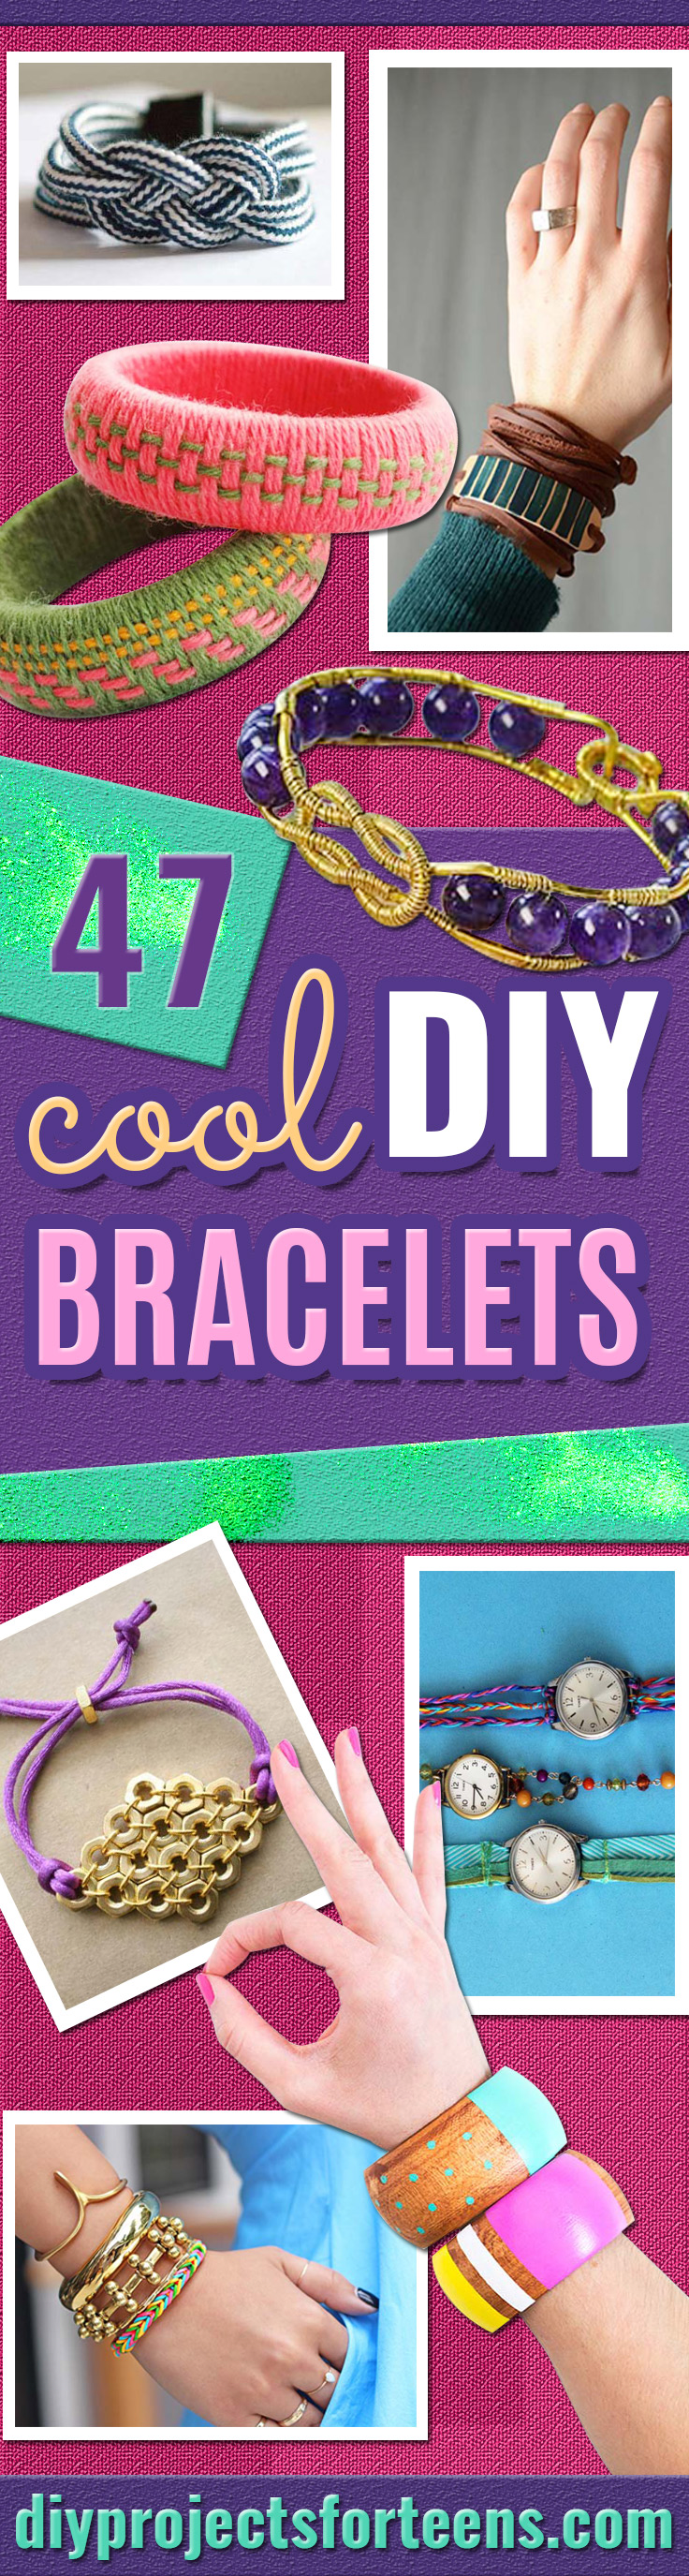 DIY Bracelets - Cool Jewelry Making Tutorials for Making Bracelets at Home - Handmade Bracelet Crafts and Easy DIY Gift for Teens, Girls and Women - With String, Wire, Leather, Beaded, Bangle, Braided, Boho, Modern and Friendship - Cheap and Quick Homemade Jewelry Ideas